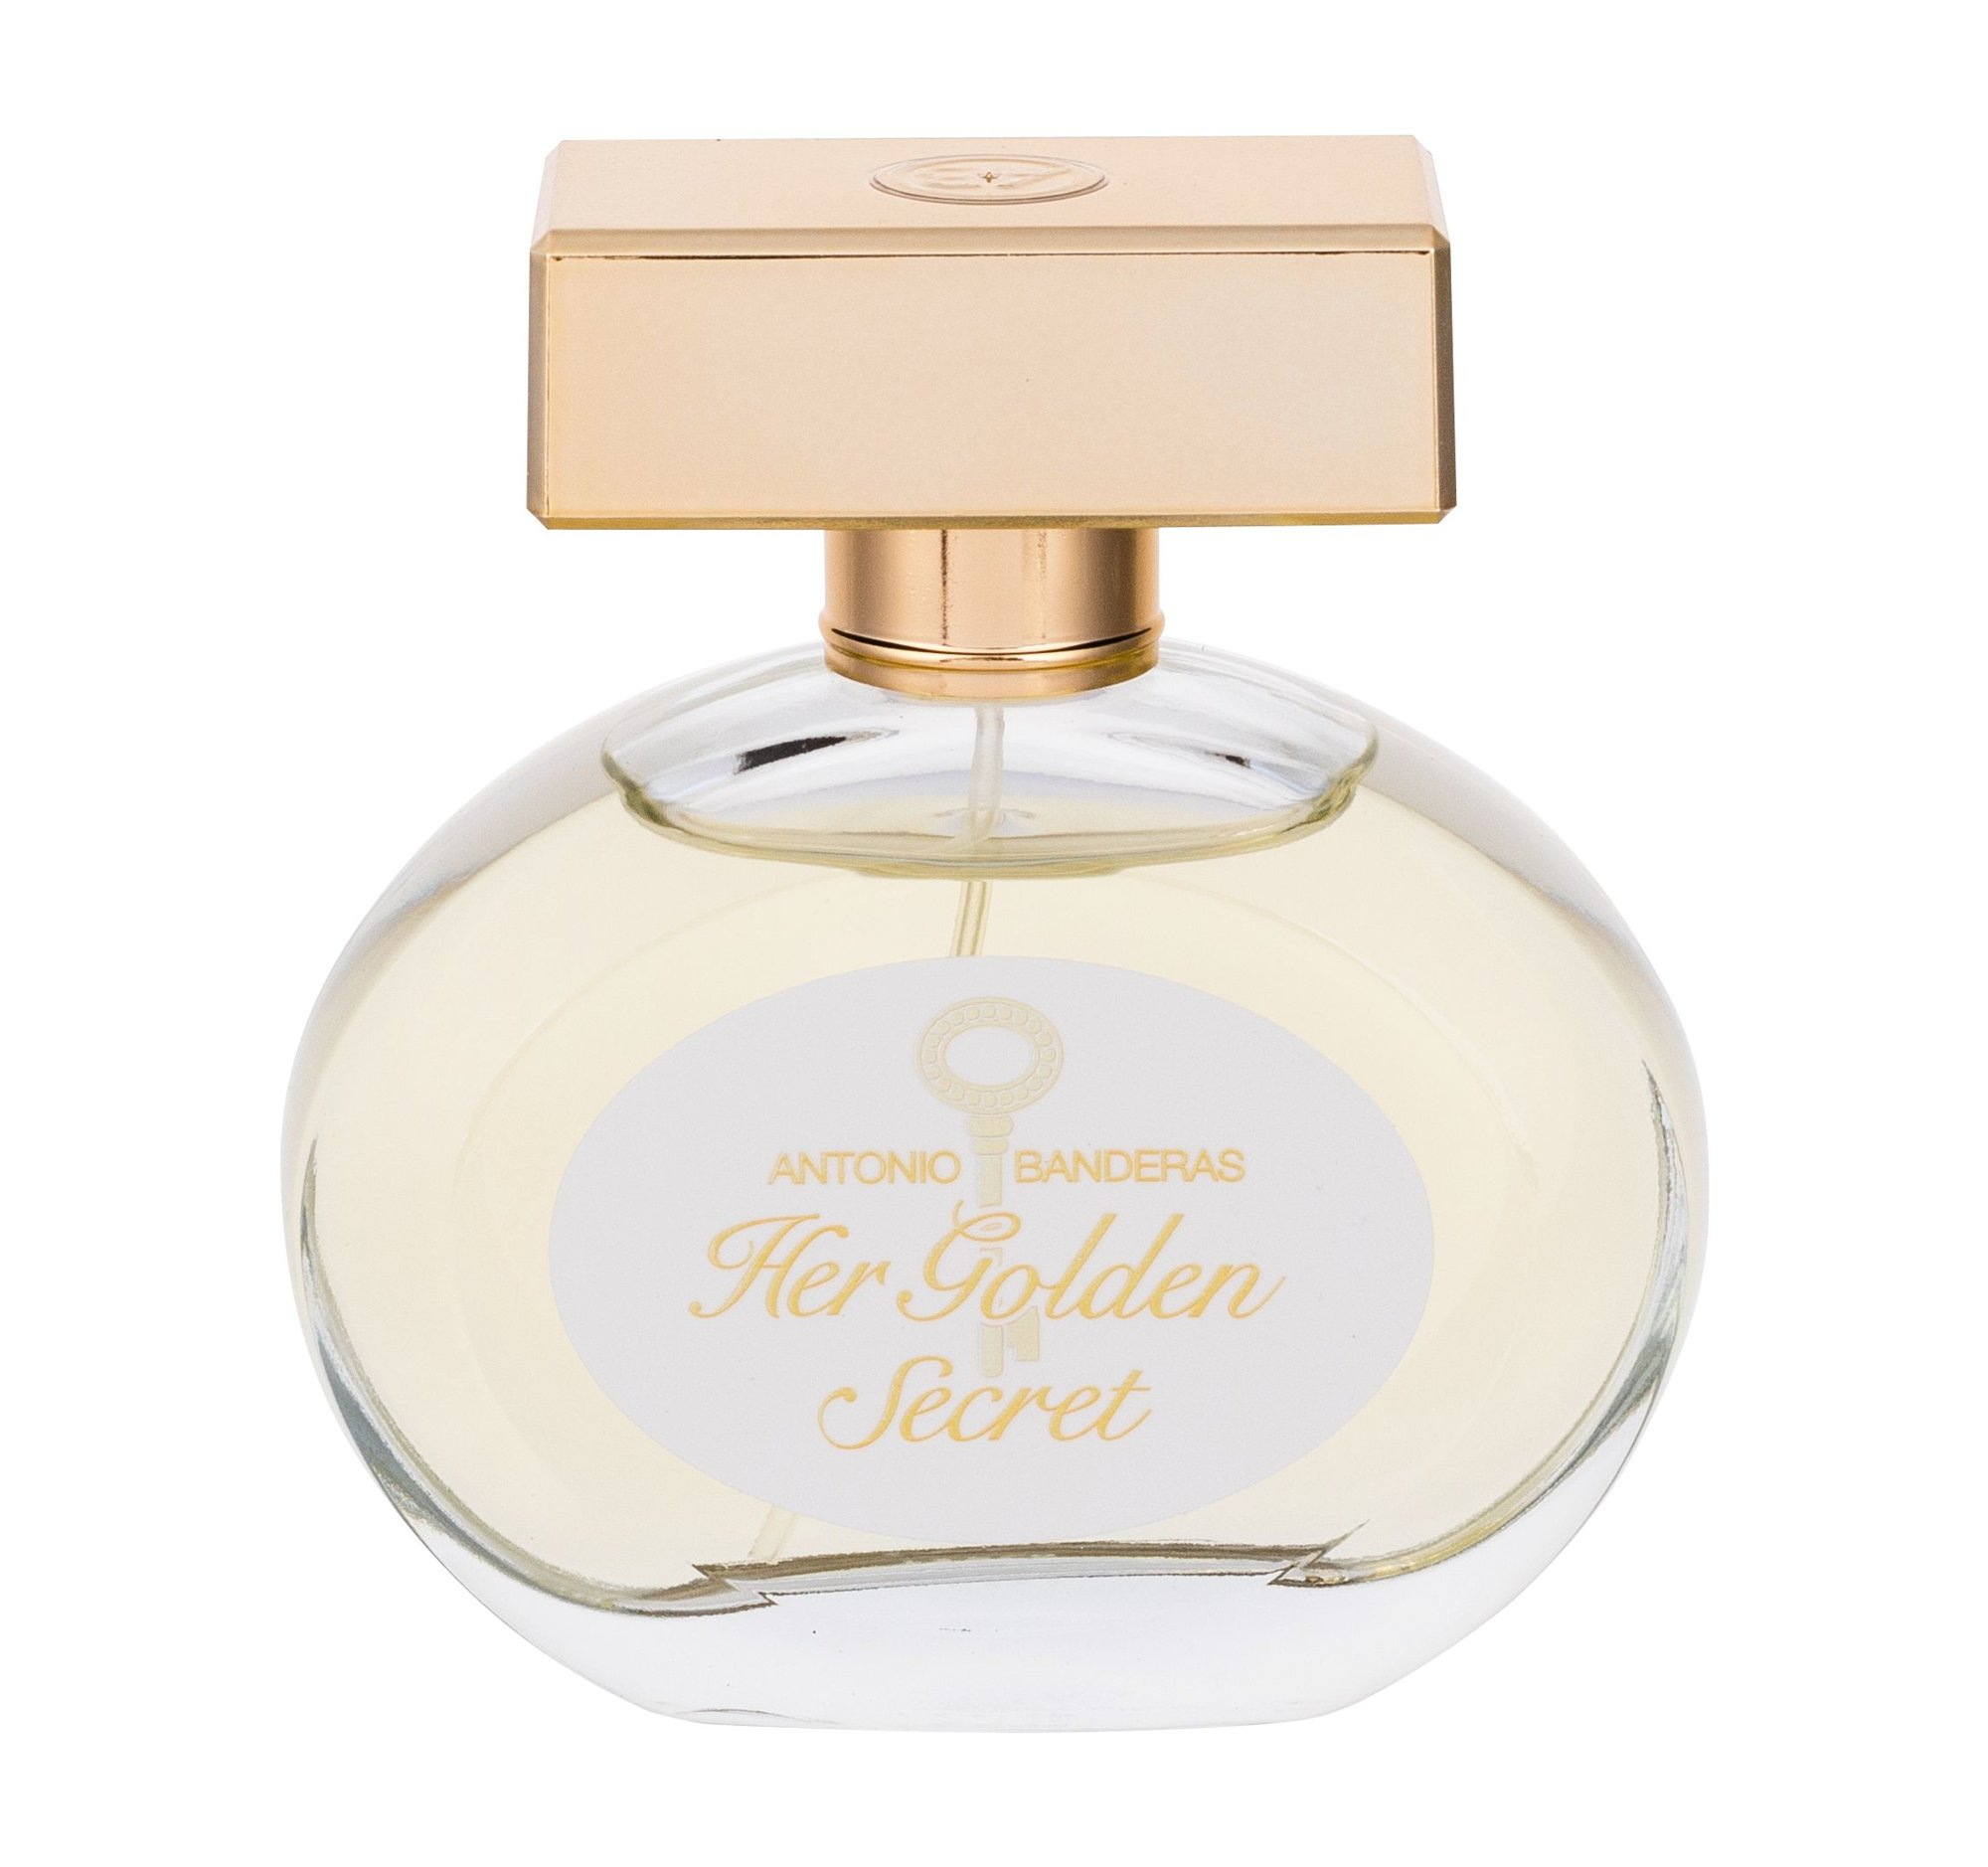 Antonio Banderas Her Golden Secret EDT 50ml